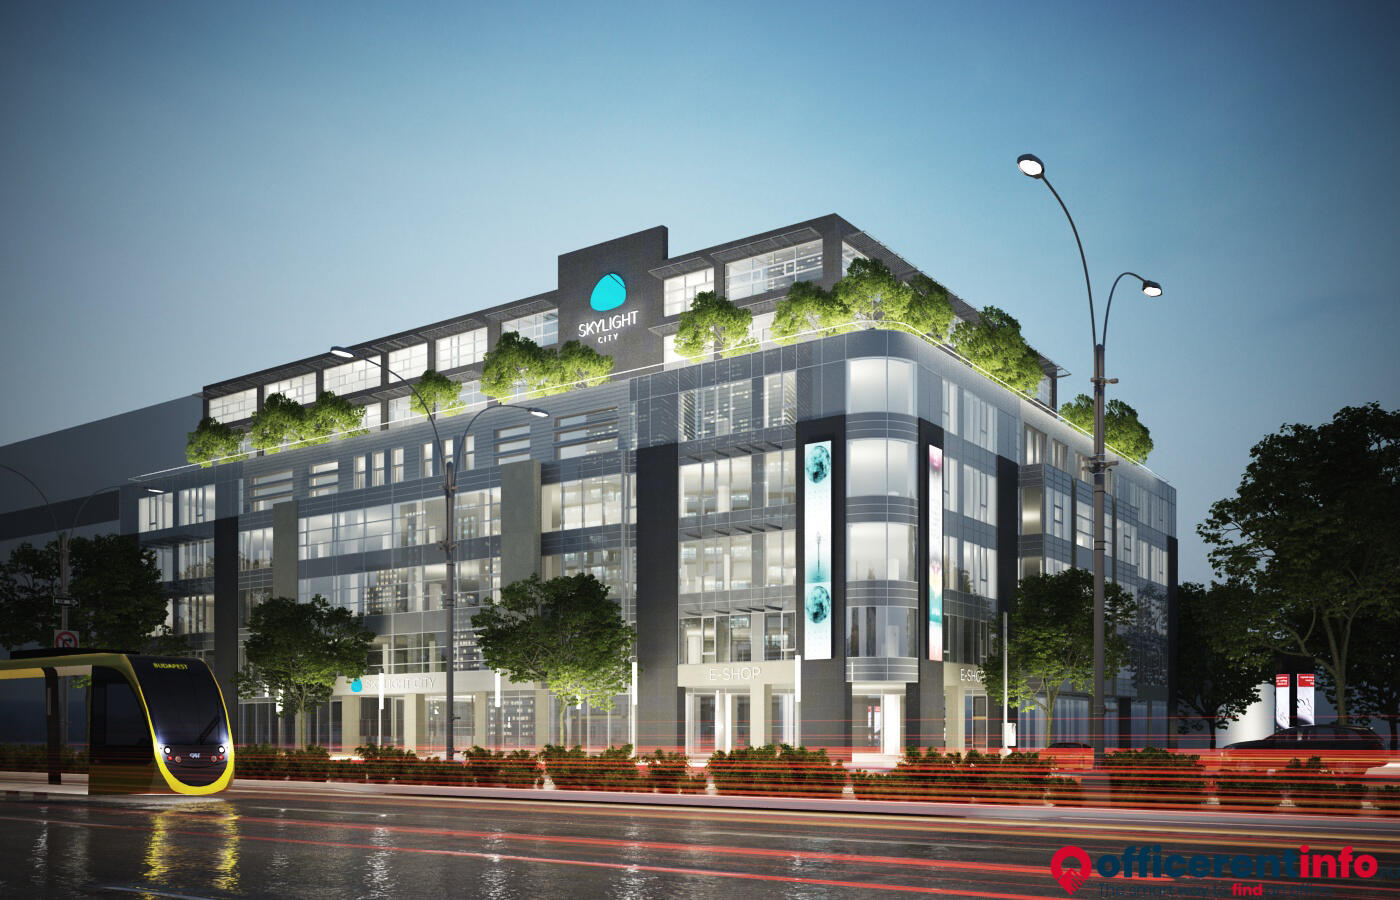 WING launches Skylight CITY office building development